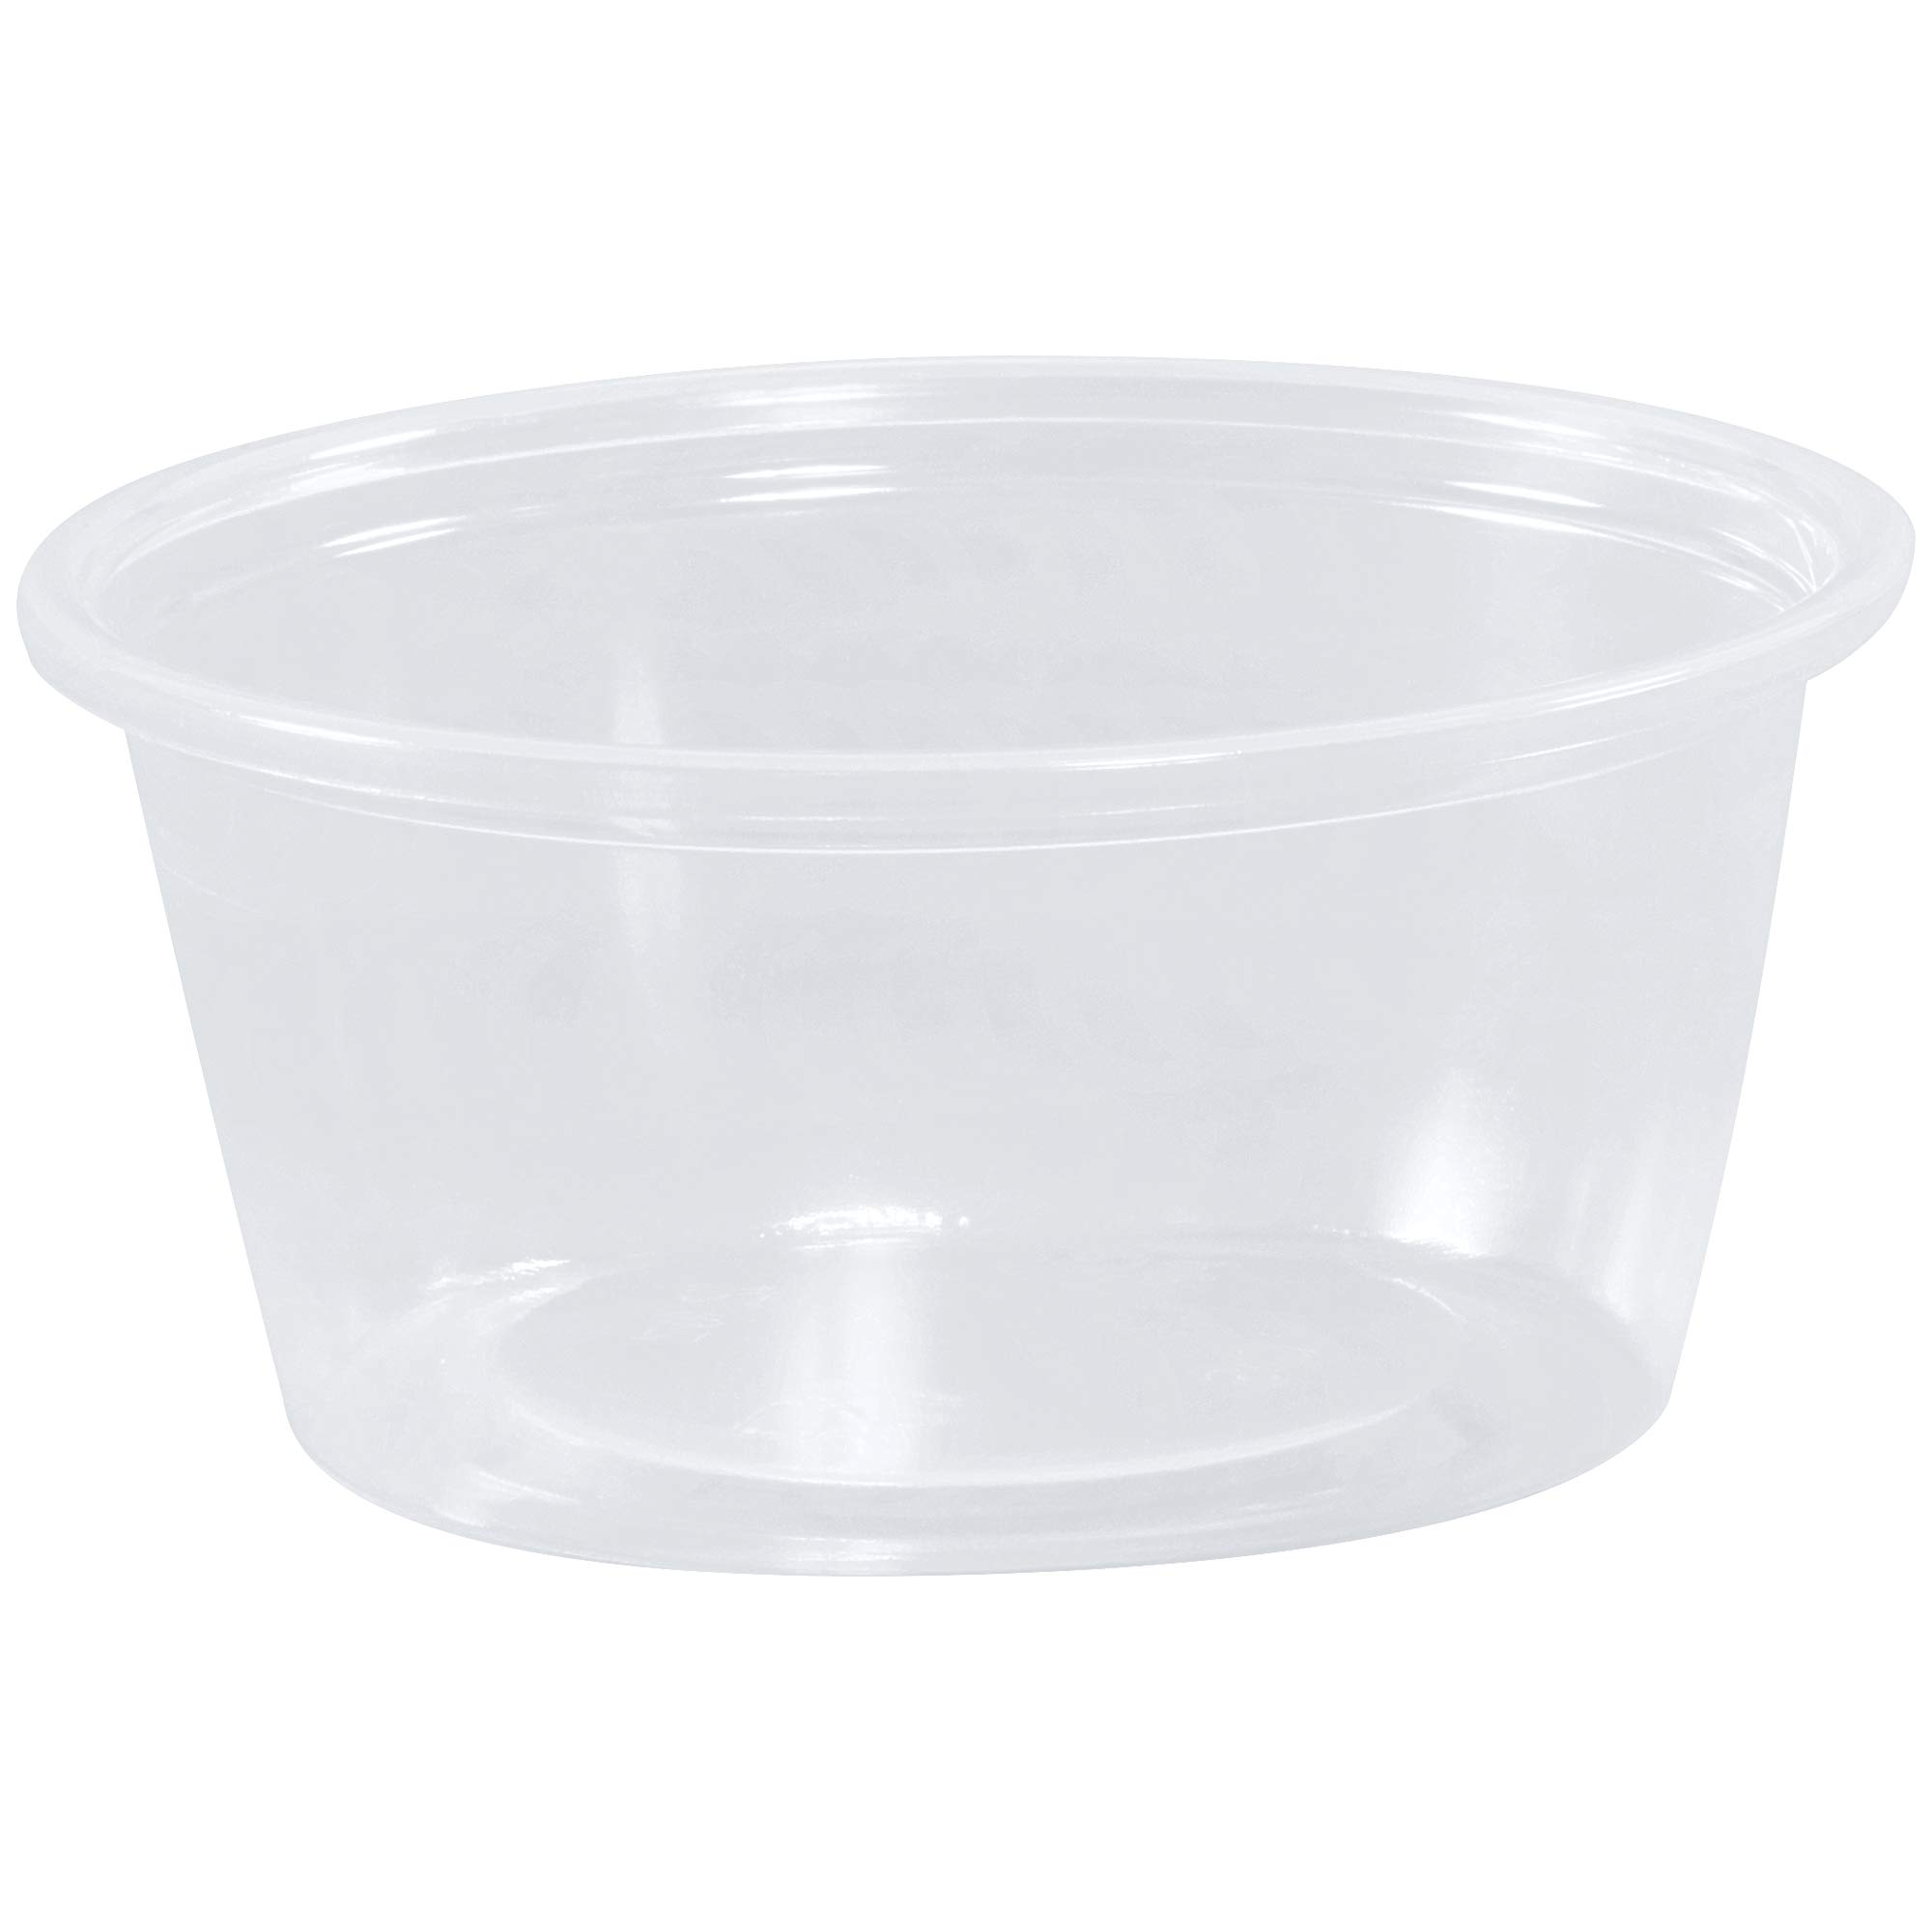 Plastic Portion Cups, 2 oz, Clear, 2500/Case